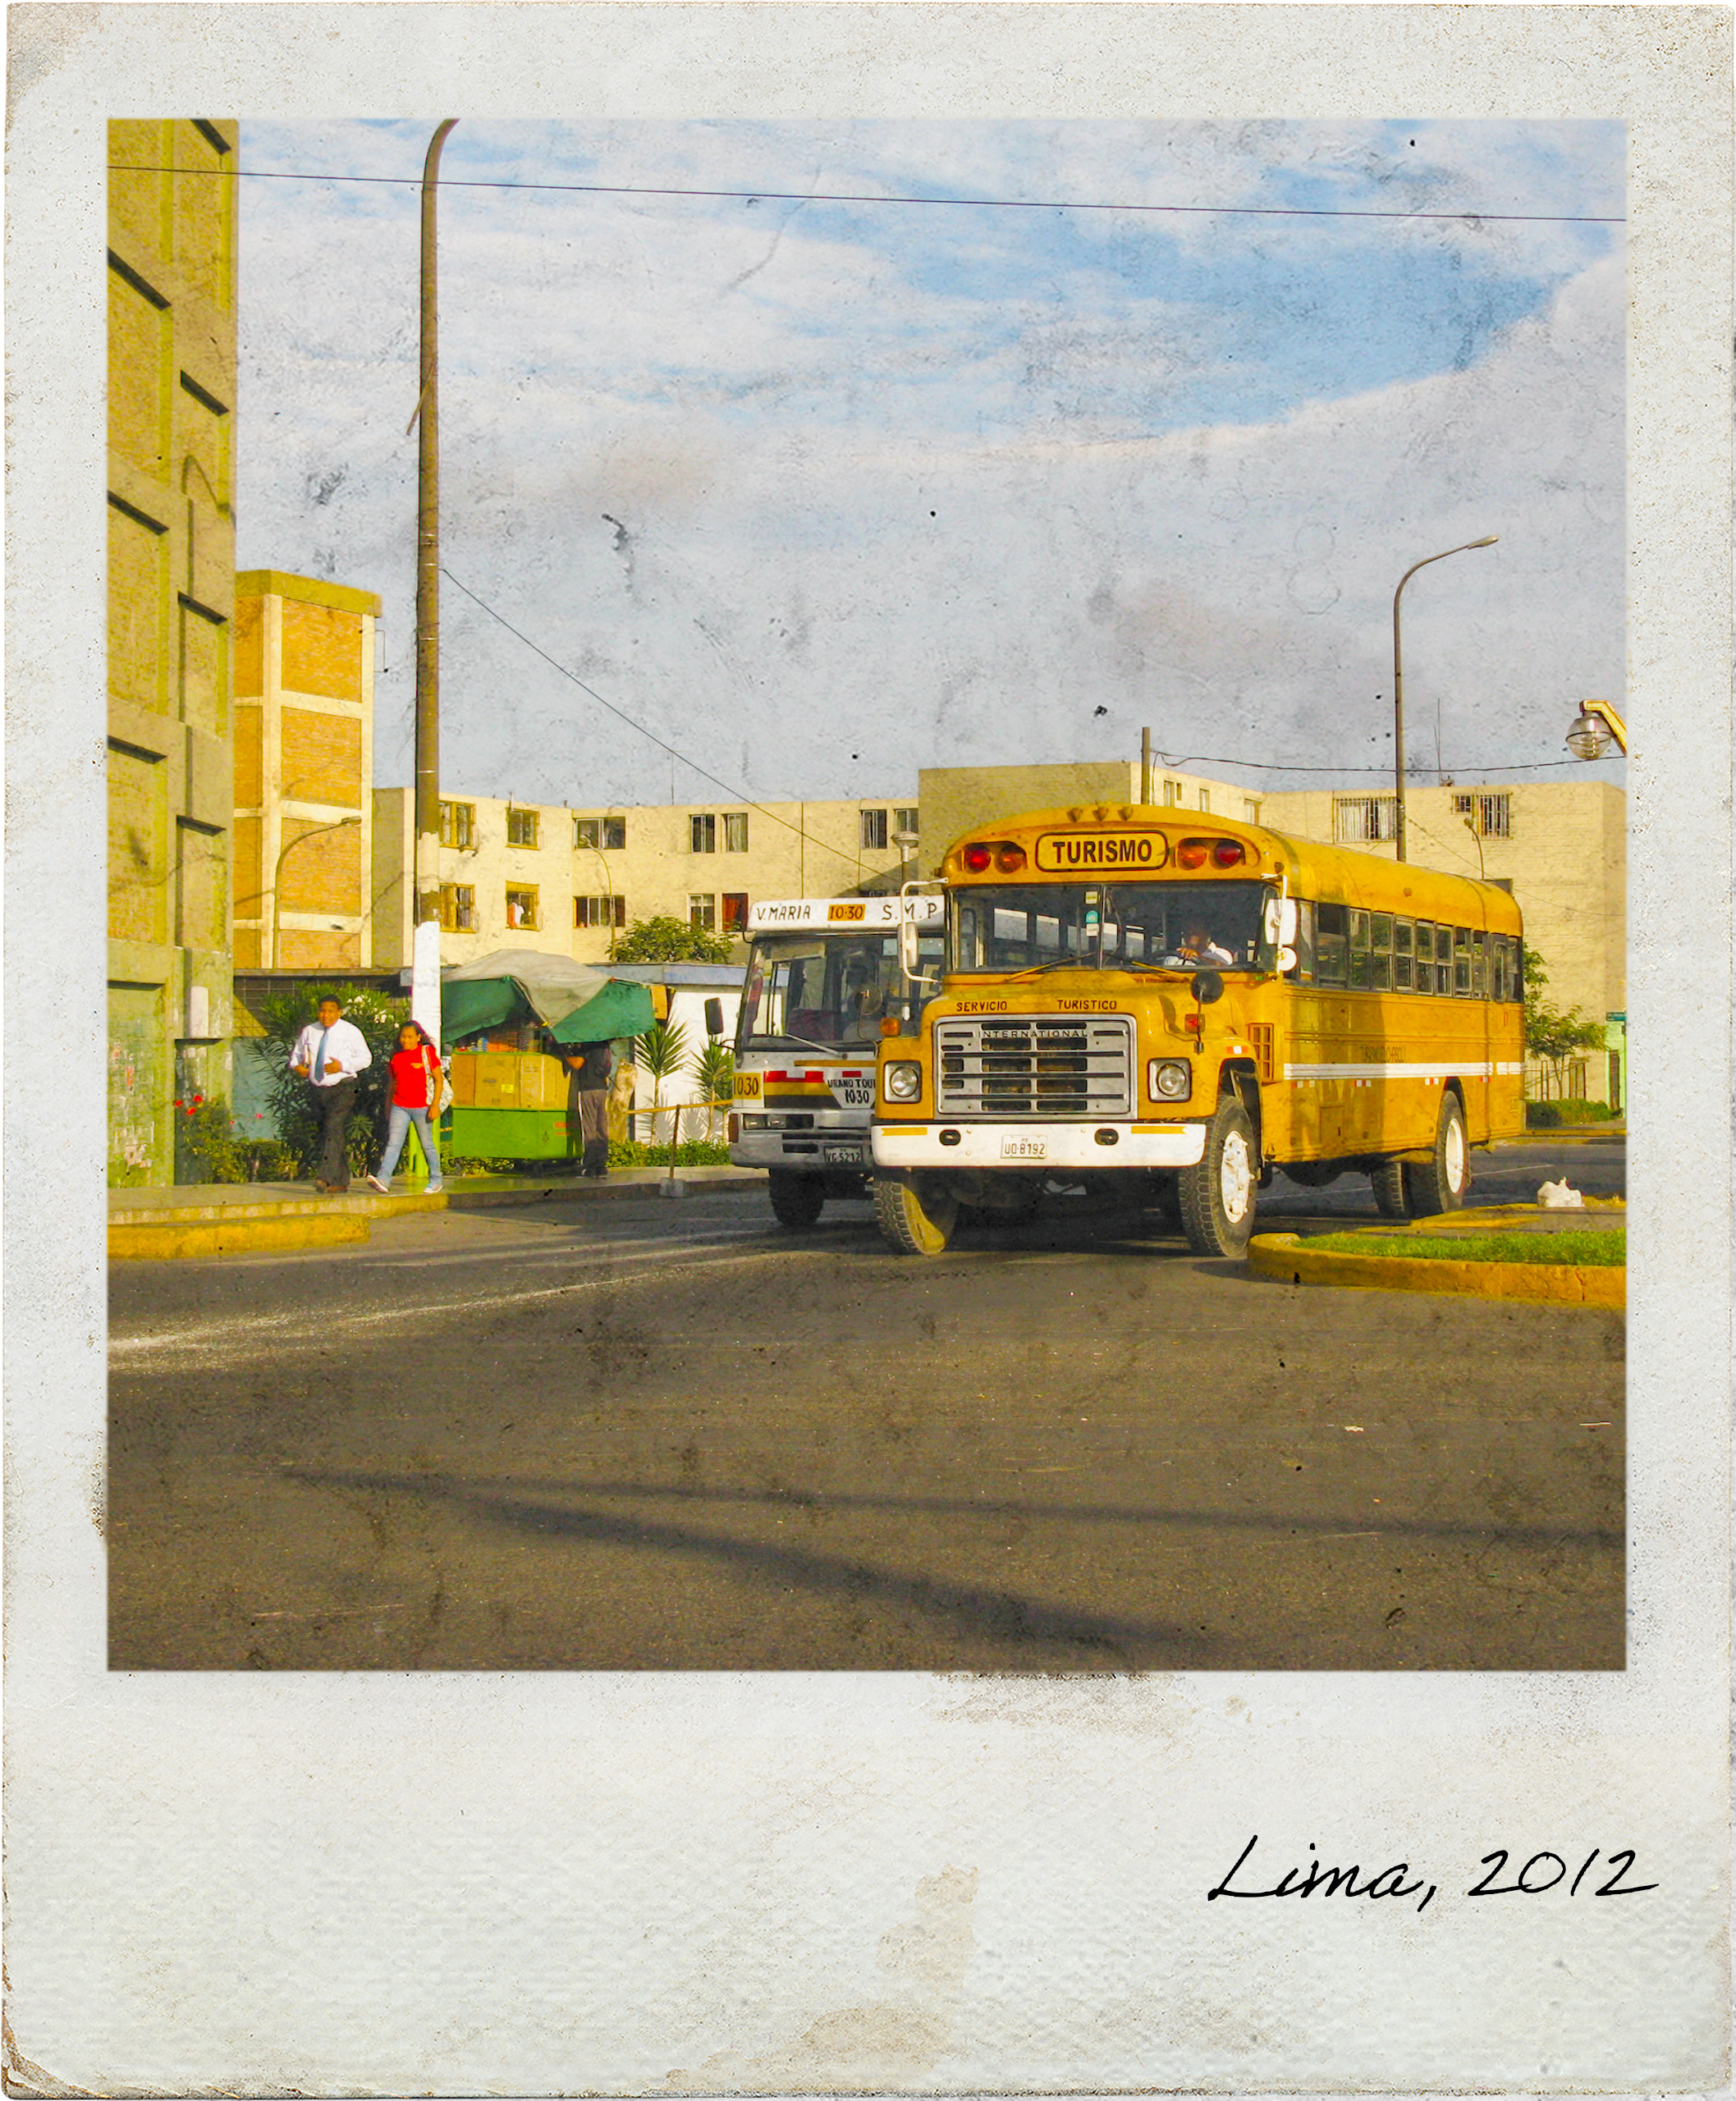 Old bus in Lima